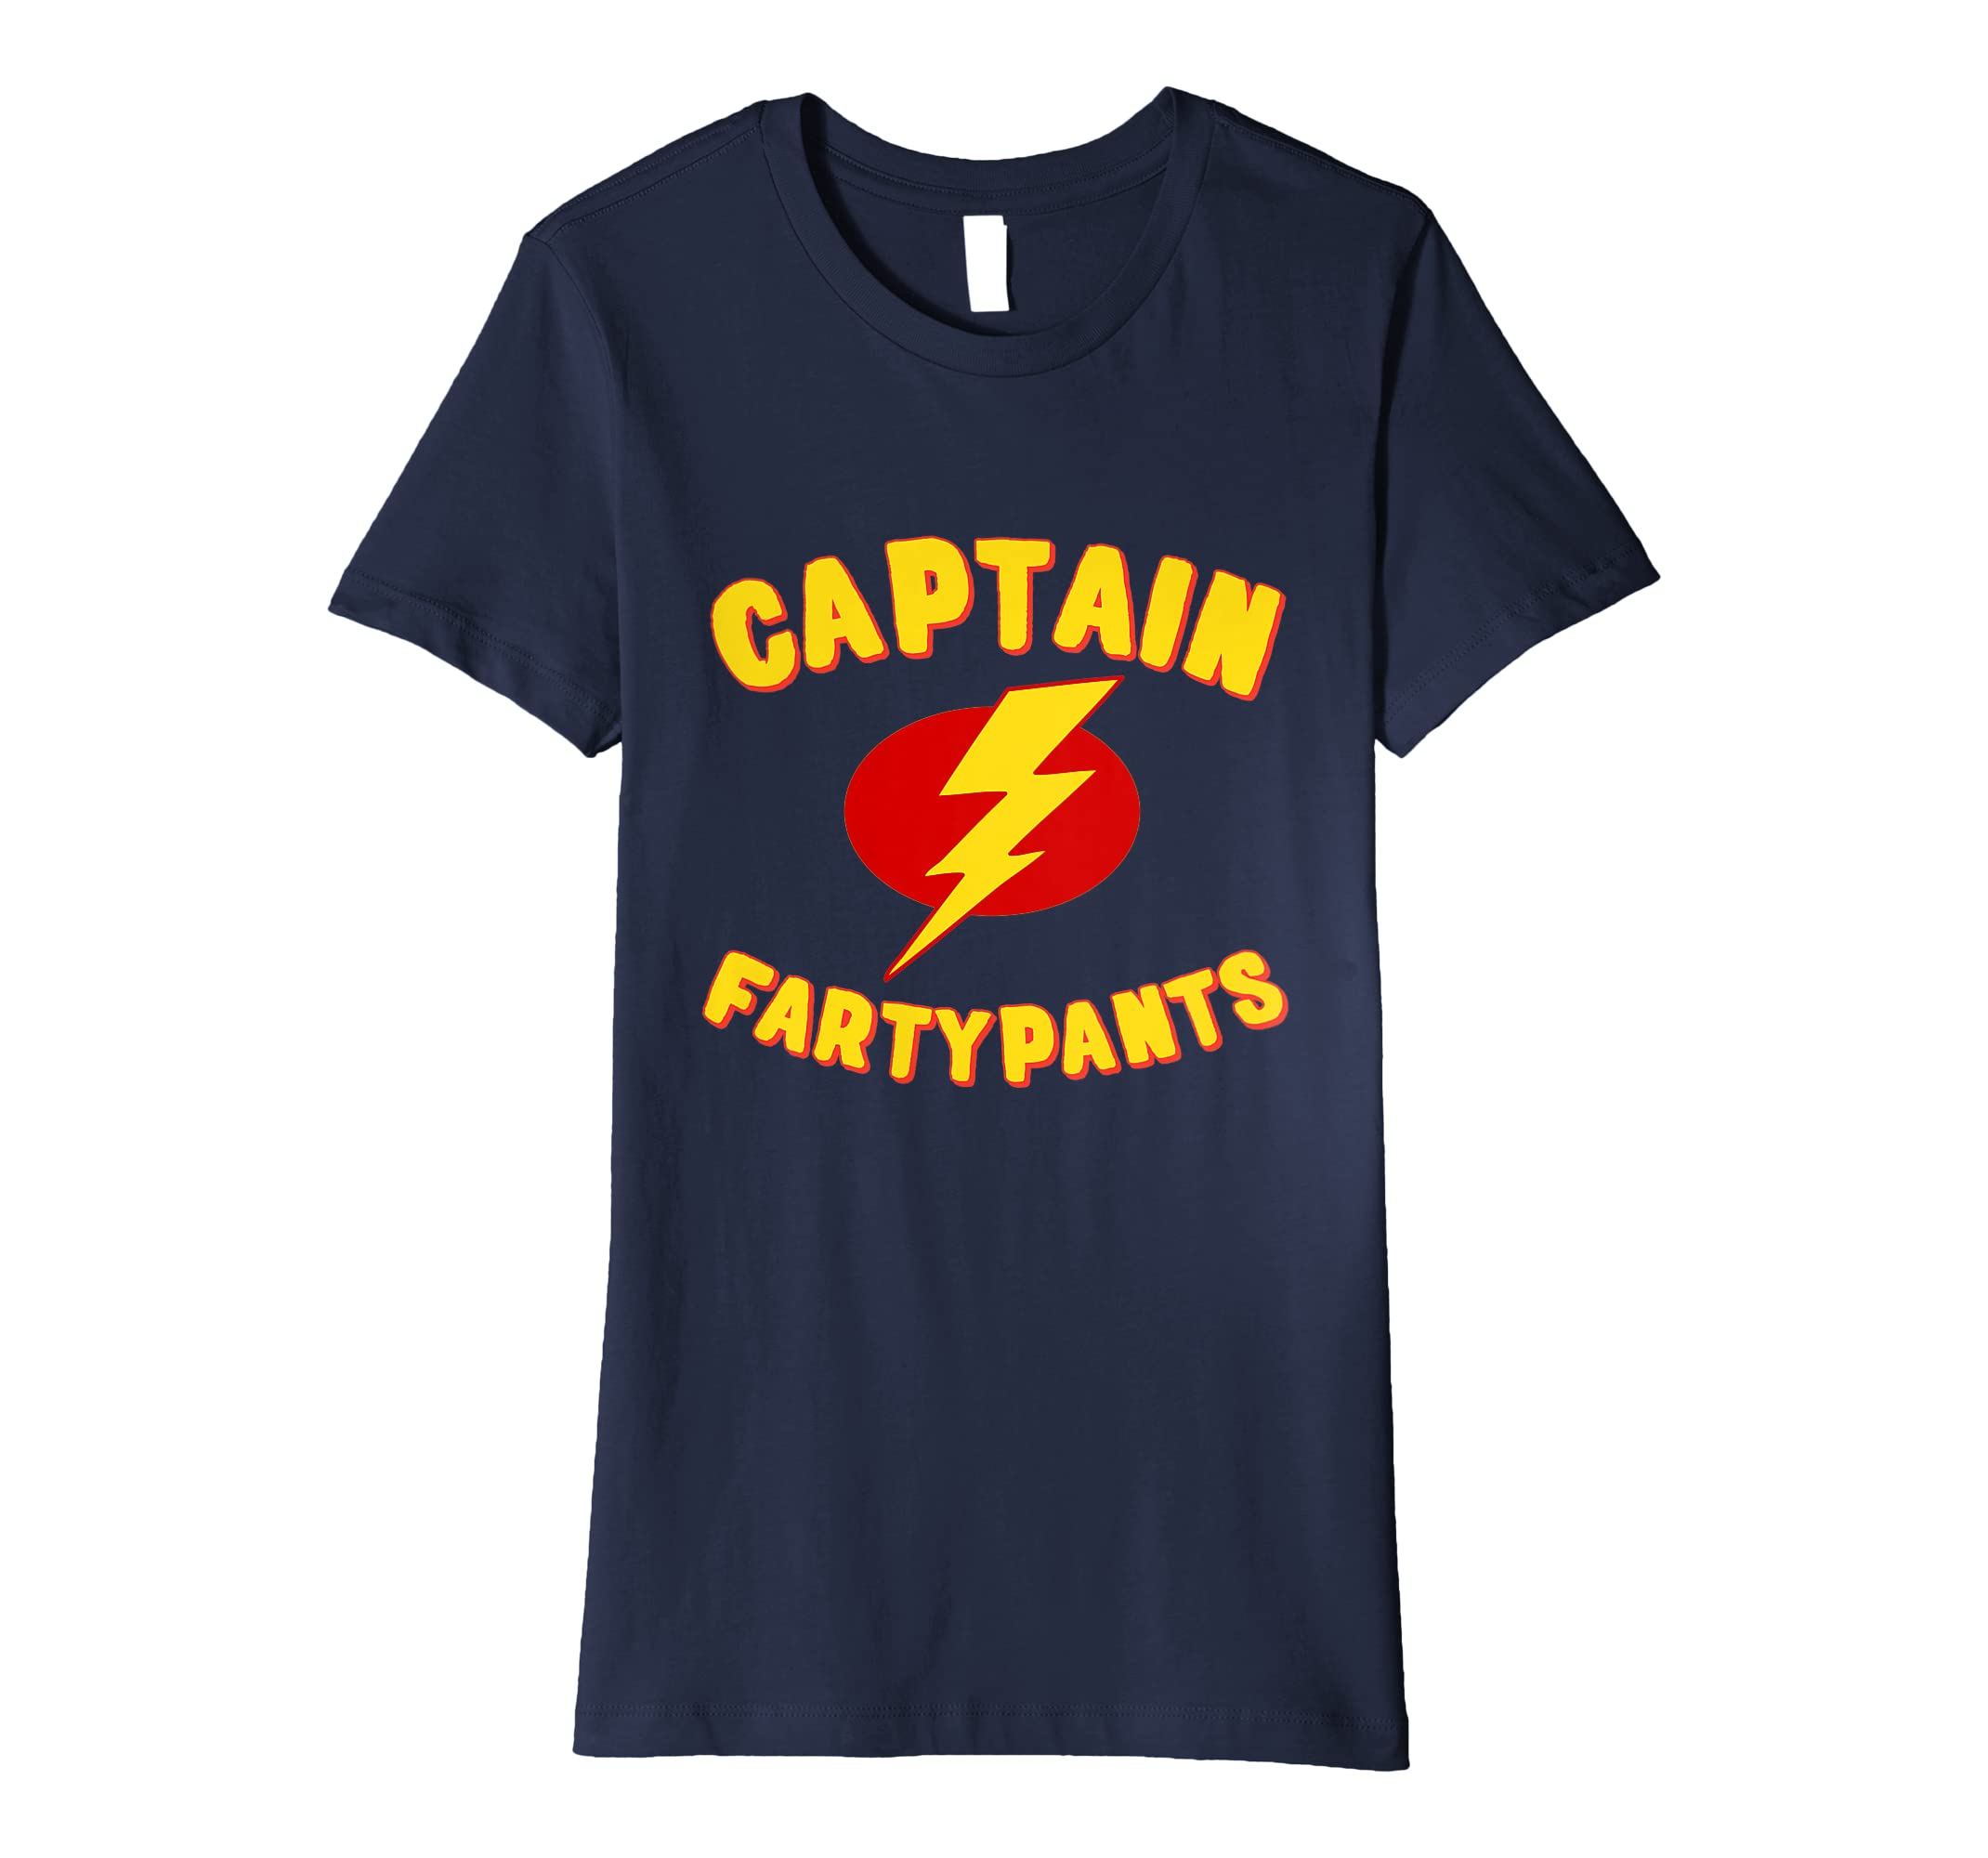 bab2df8a6 Amazon.com: Captain Fartypants Funny Fart T-Shirt: Clothing